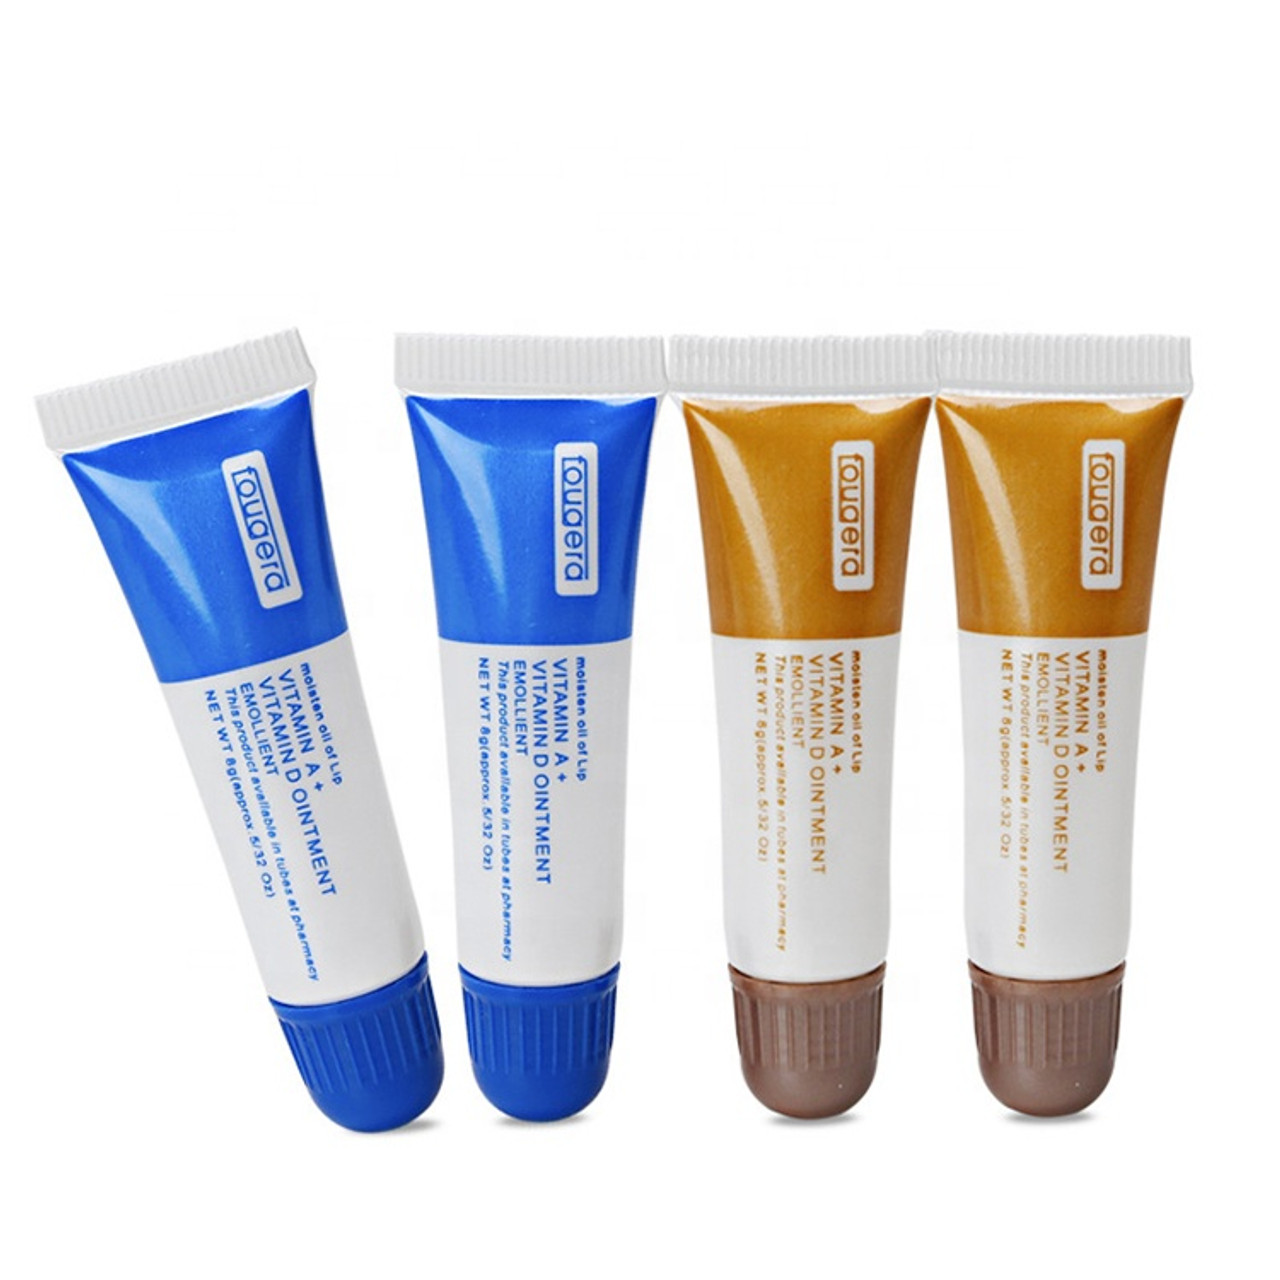 Eyebrow Lip Eyeliner Cosmetic Tattoo Repair After Care Cream Ointment Permanent Makeup Vitamine Cream